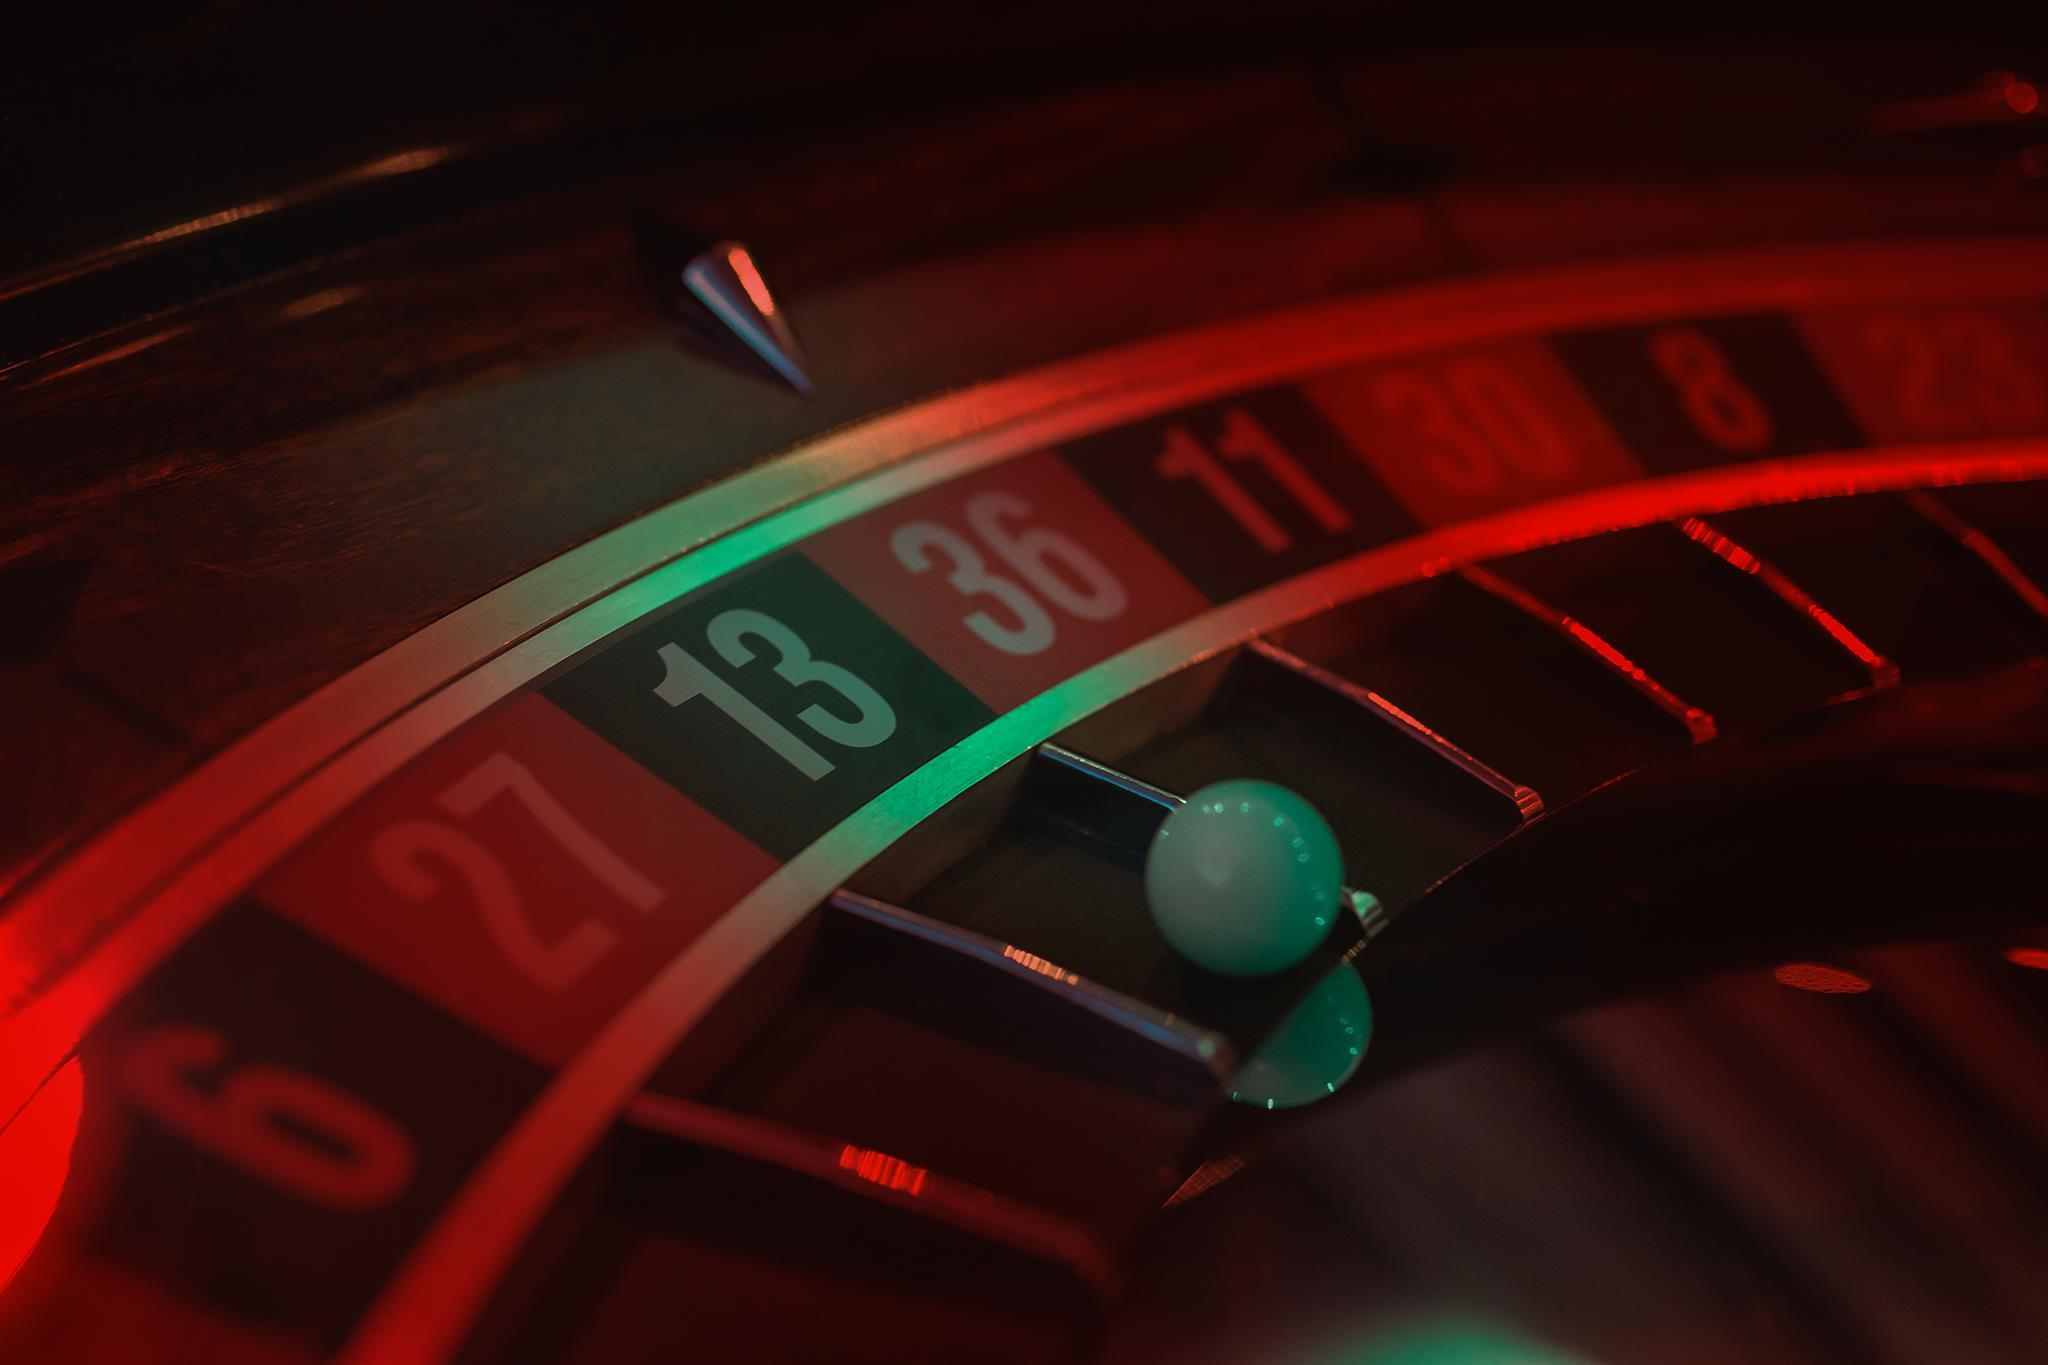 The 13th - your lucky day at the Casino Zell am See